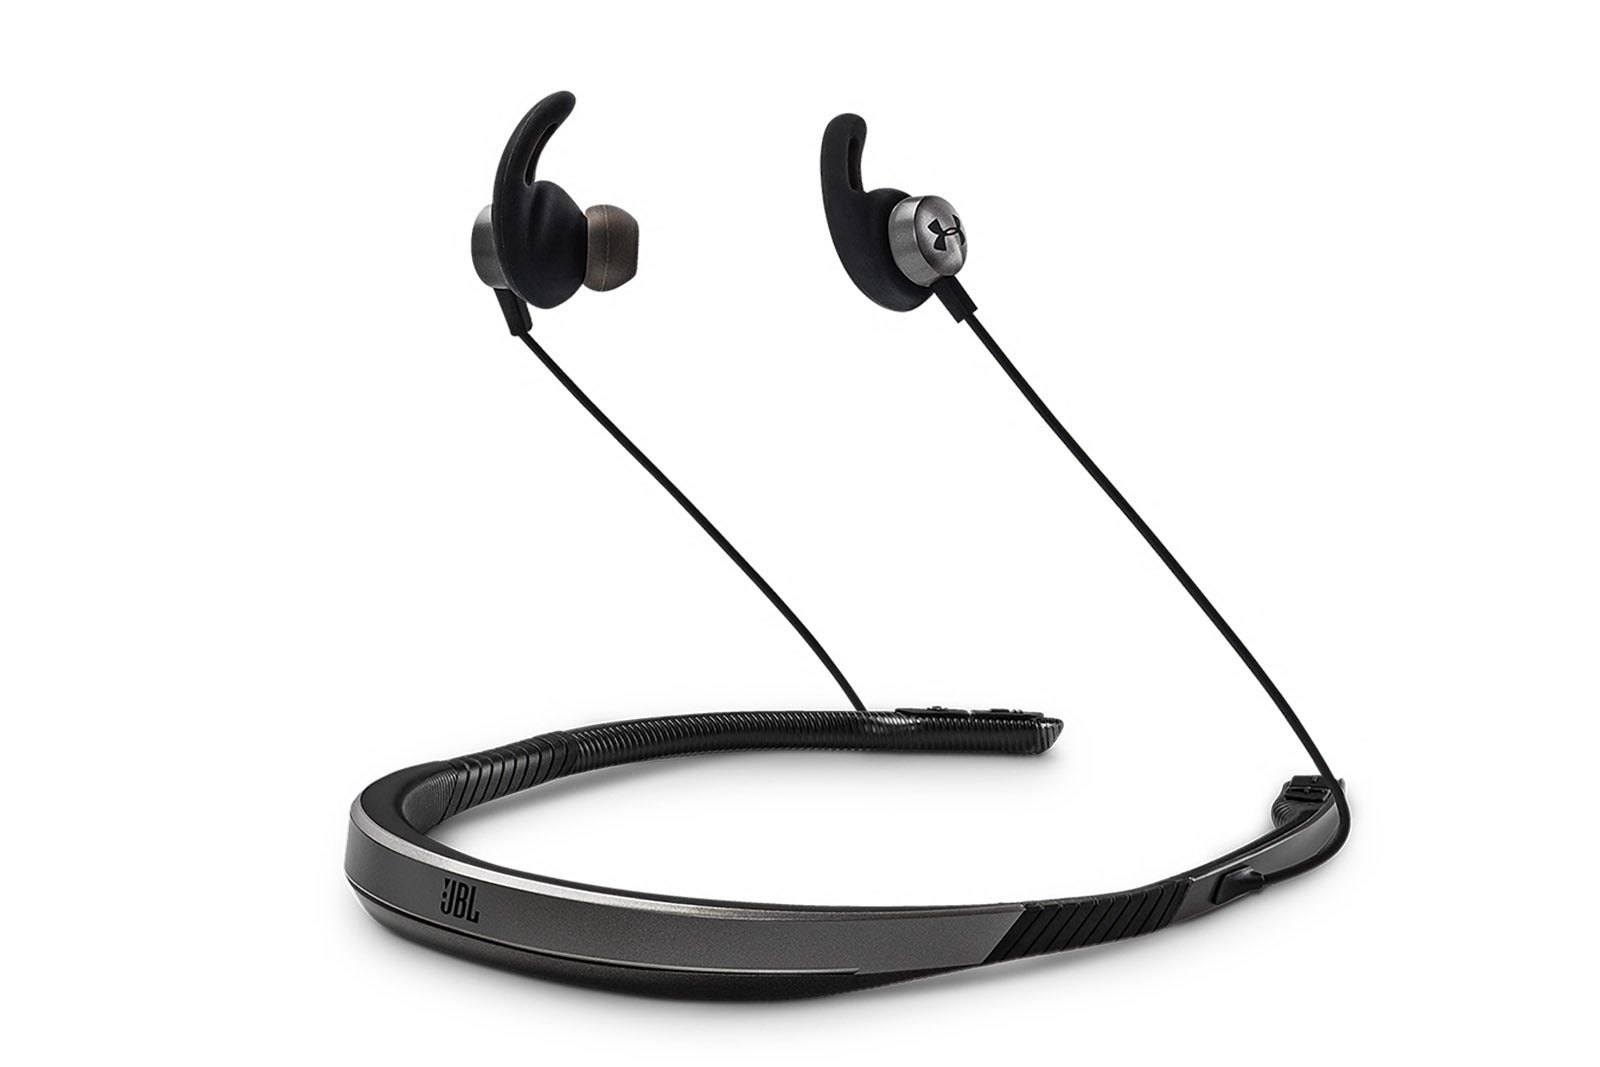 Ua Sport Flex Wireless Headphone Review Made For Active Music Headset Jbll Lovers Techhive